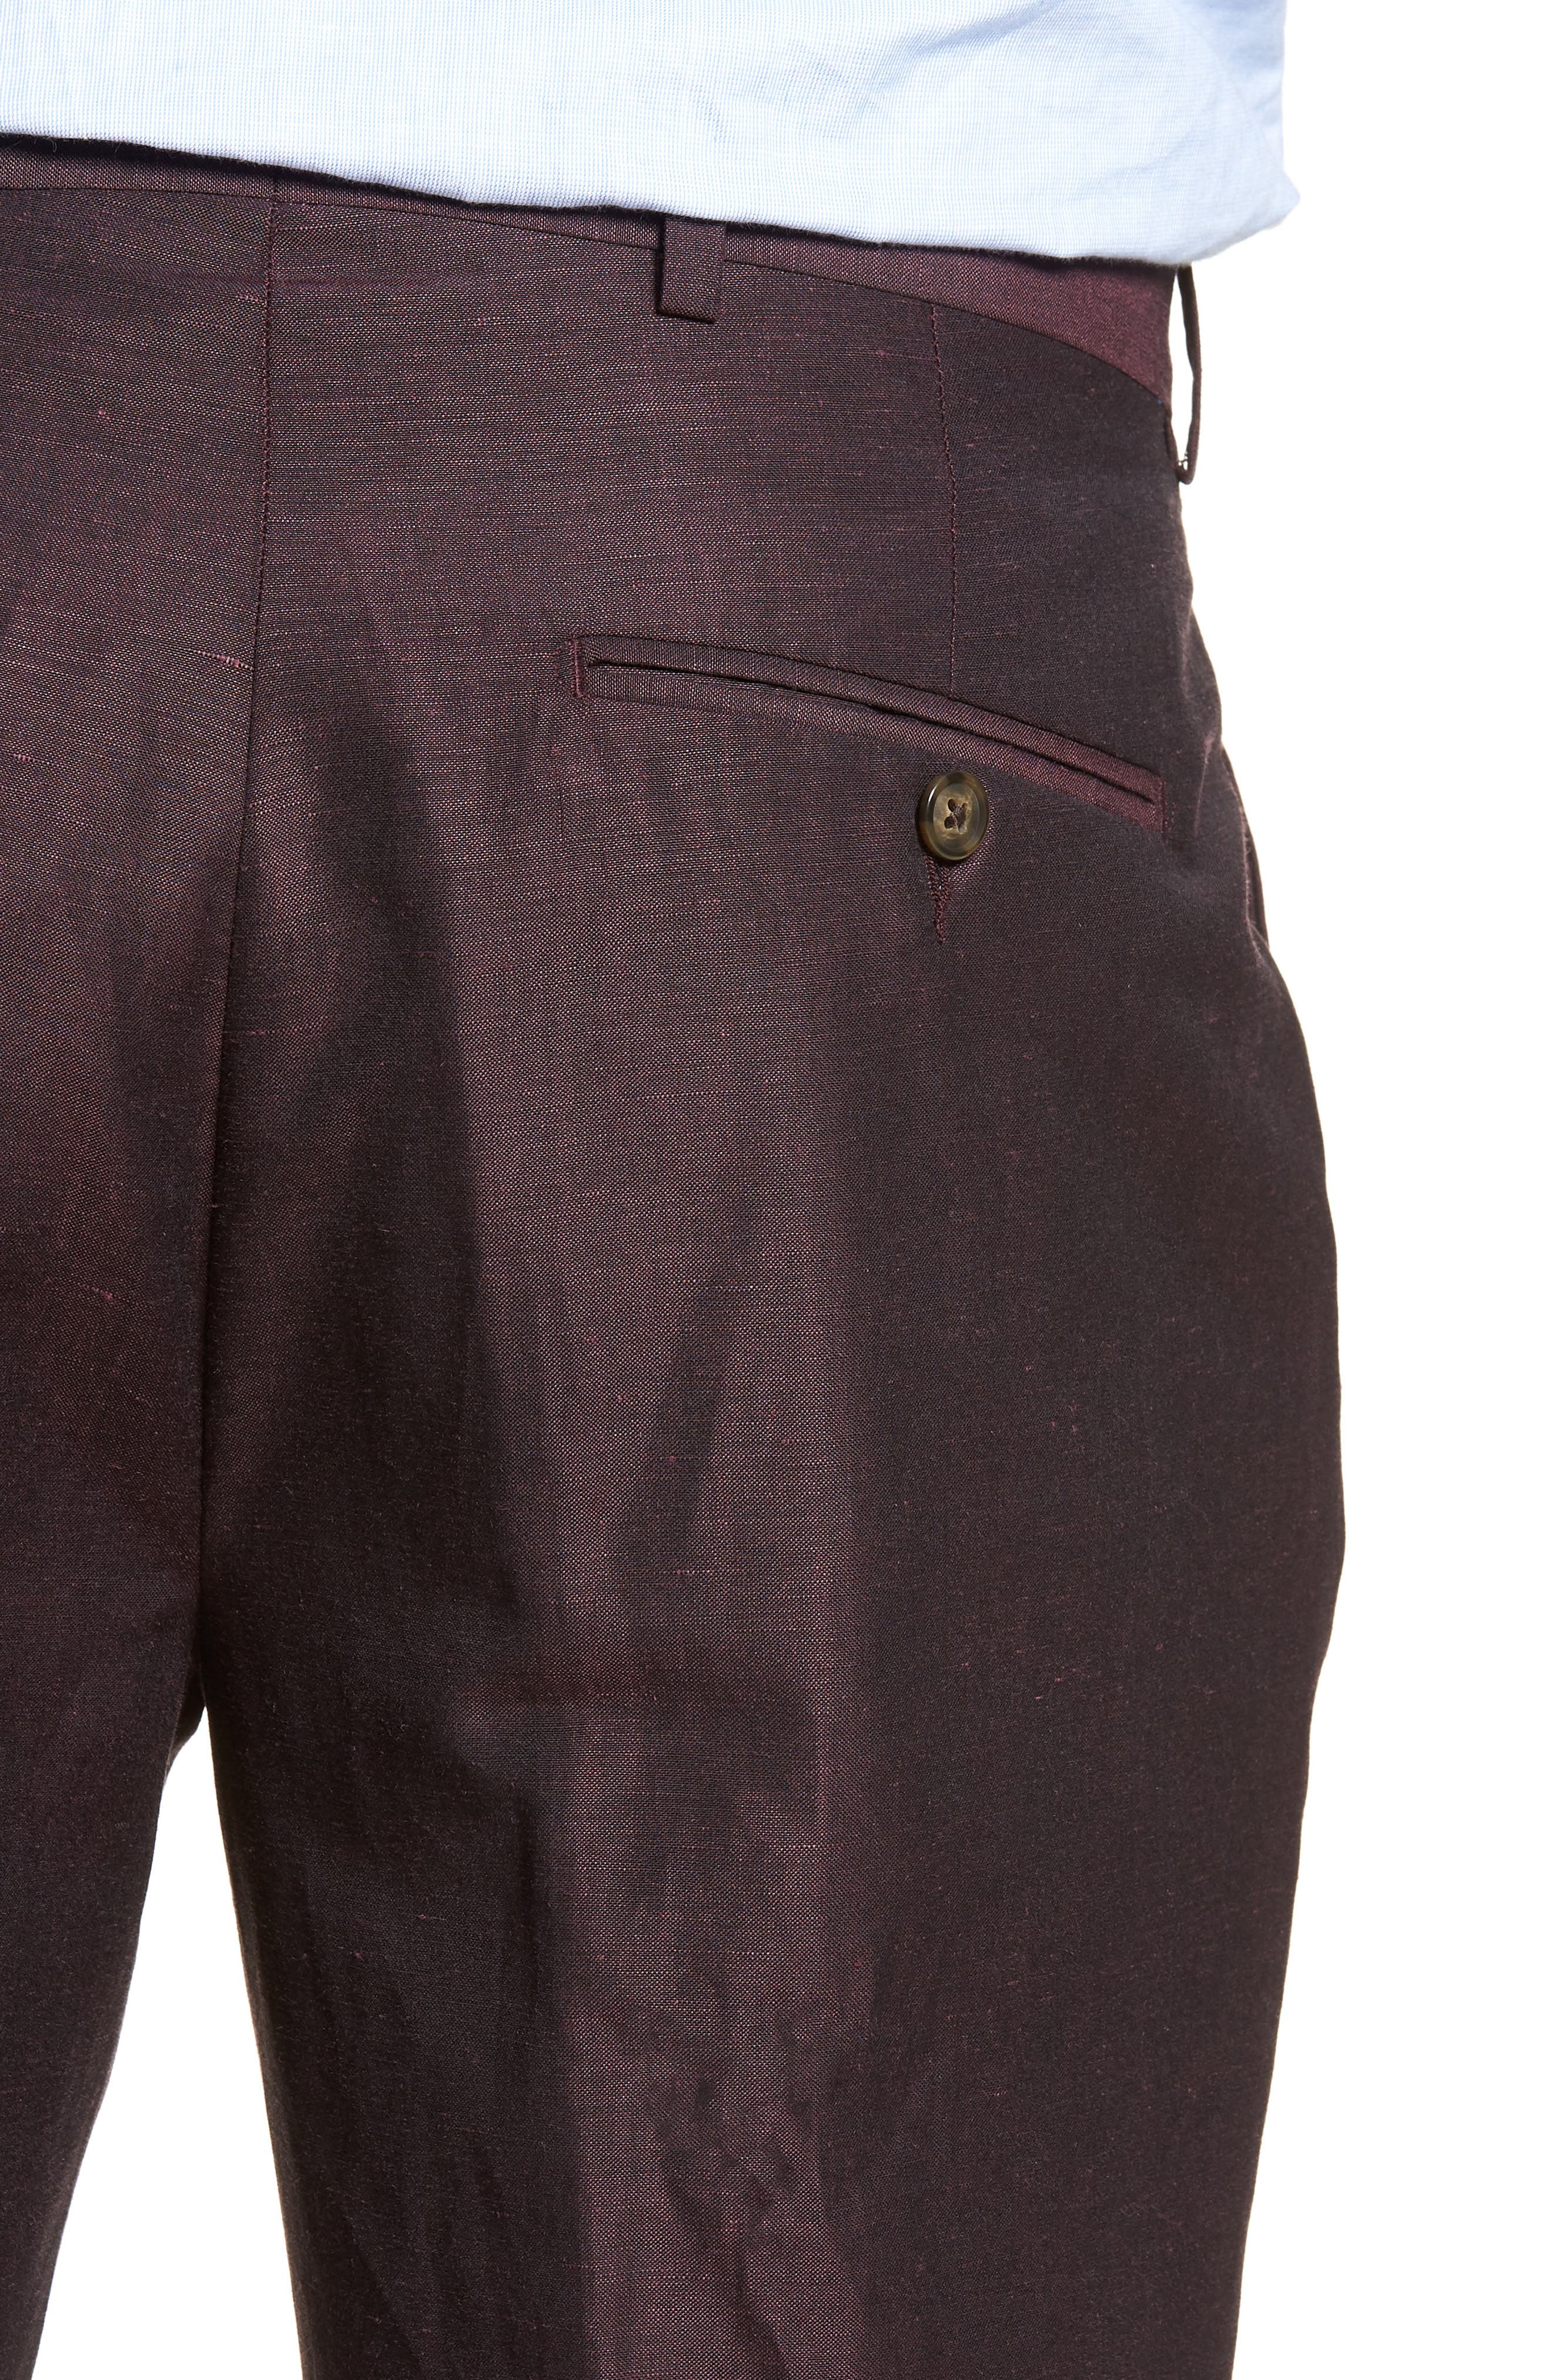 Dagger Flat Front Solid Wool & Linen Trousers,                             Alternate thumbnail 4, color,                             500